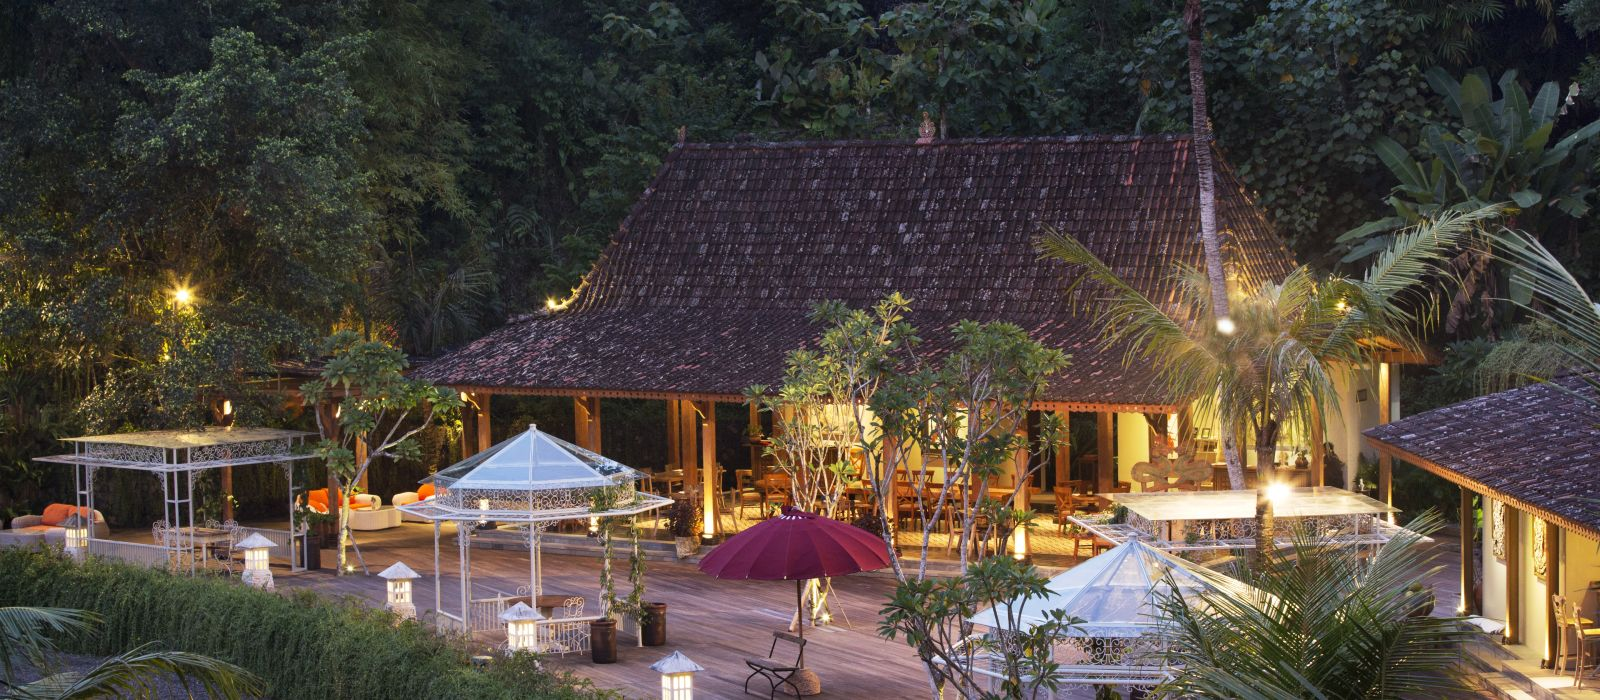 Hotel Plataran Borobudur Resort & Spa Indonesia